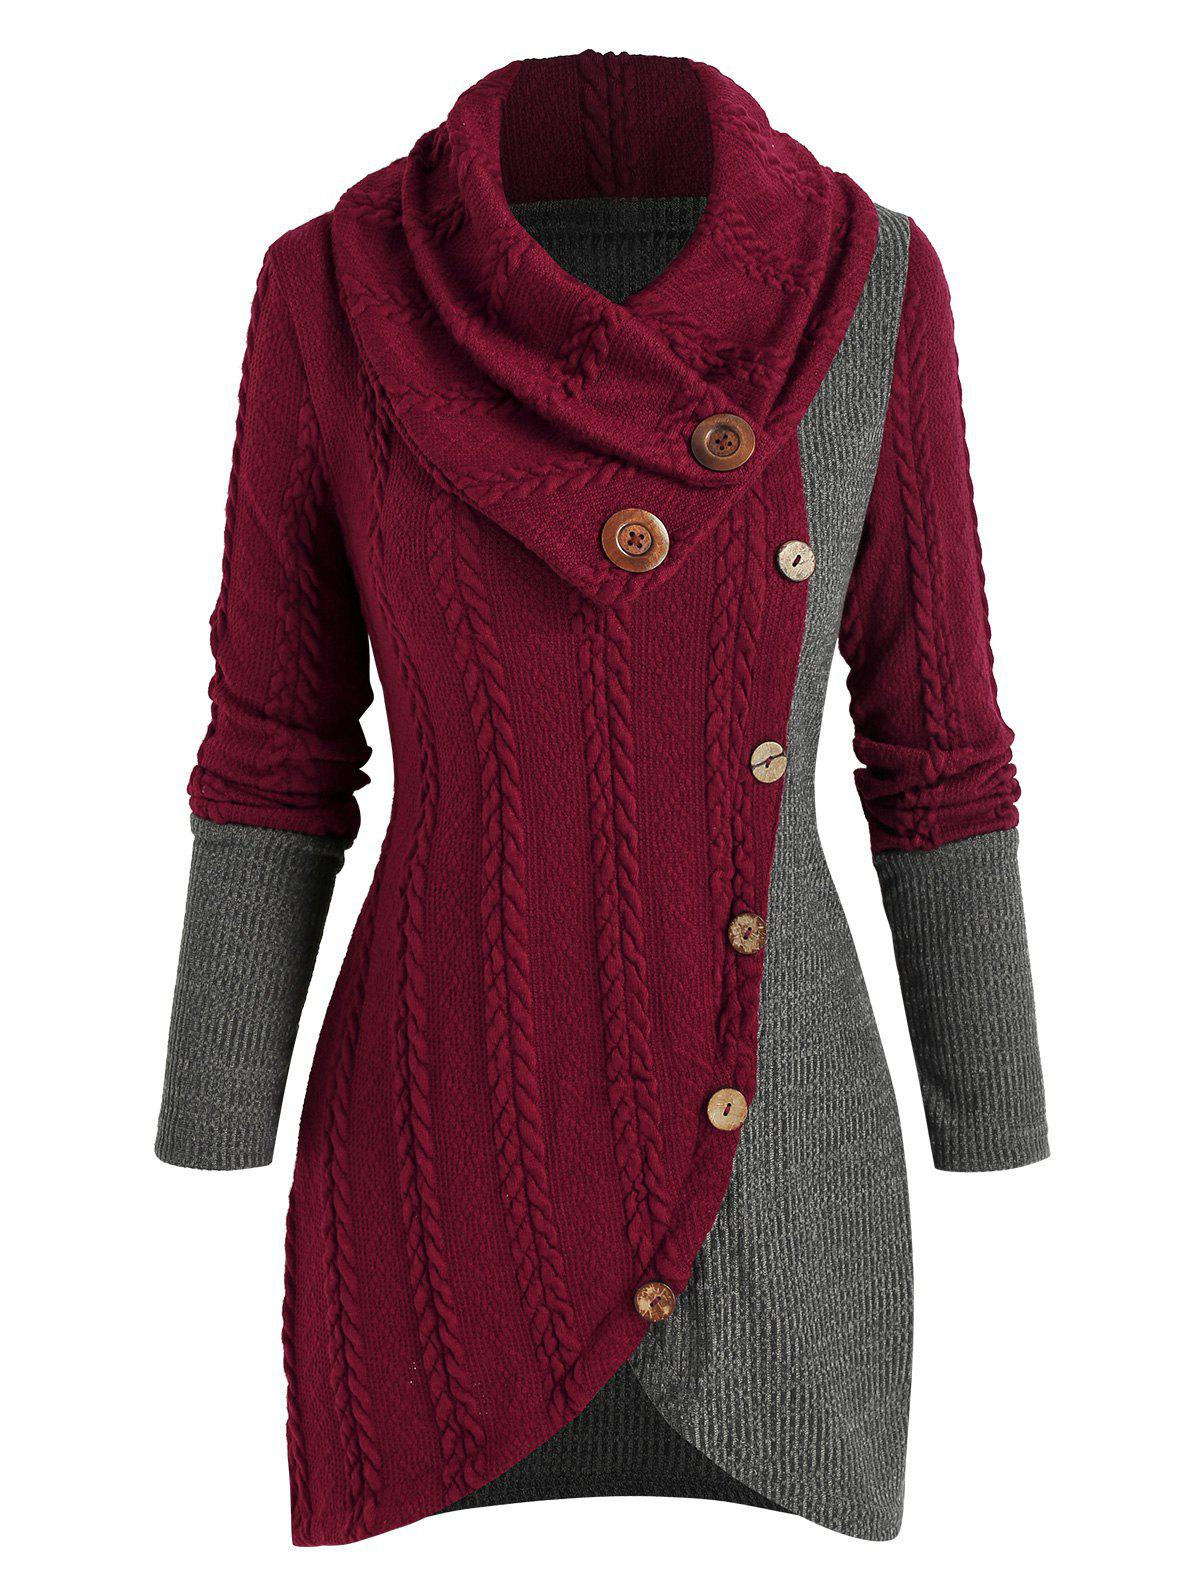 Patchwork Colorblock Detachable Neck Knitwear - RED WINE L